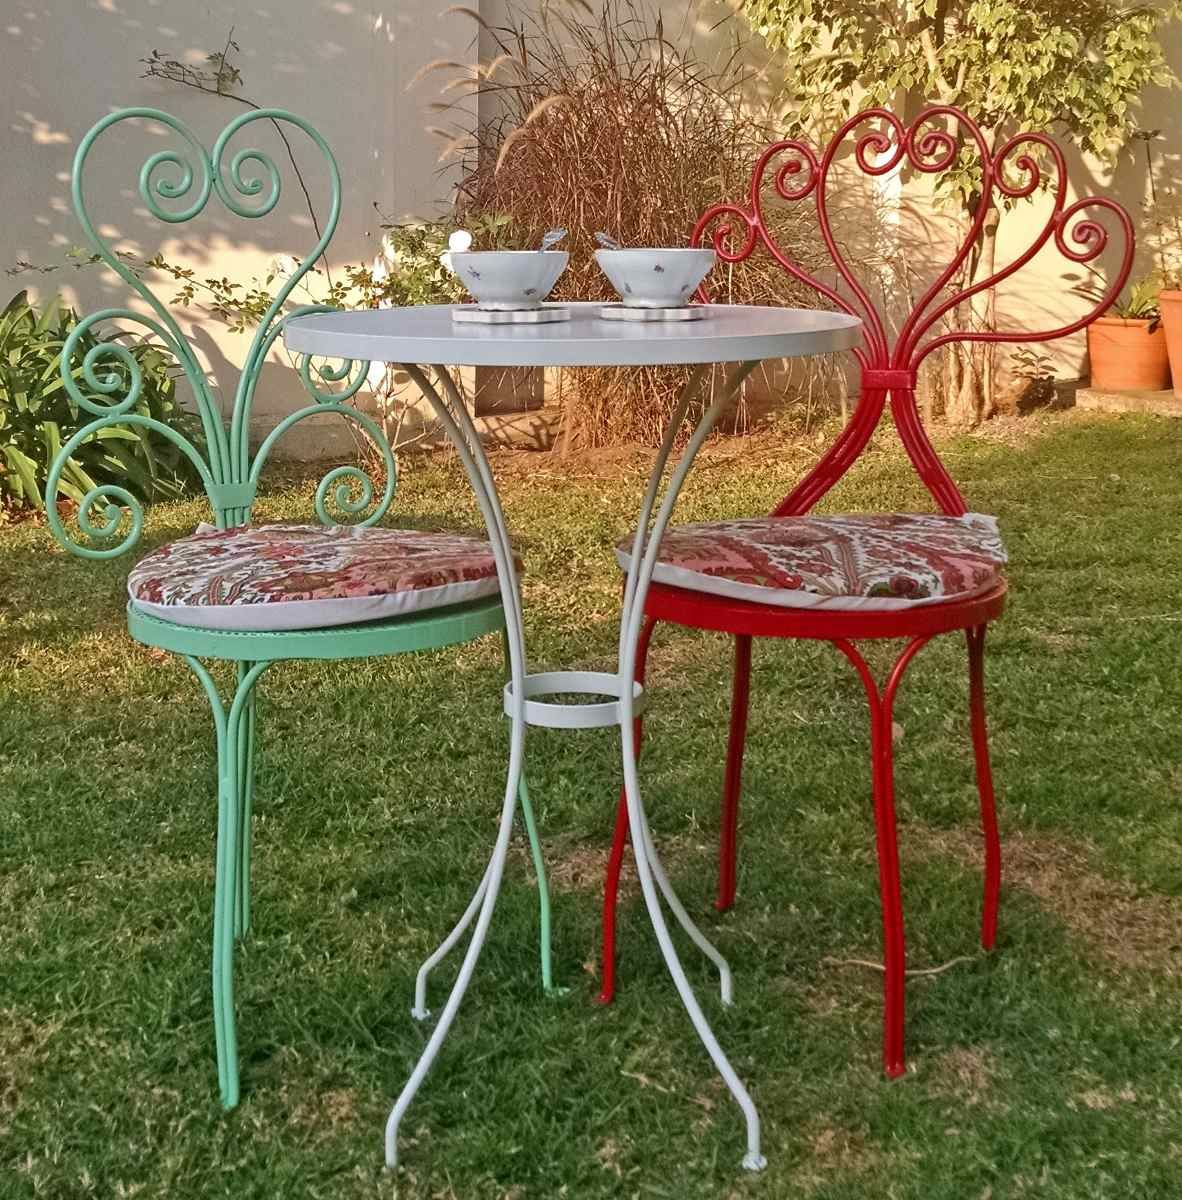 Mesa de hierro forjado 50 cms color apta exterior e for Table jardin beauty